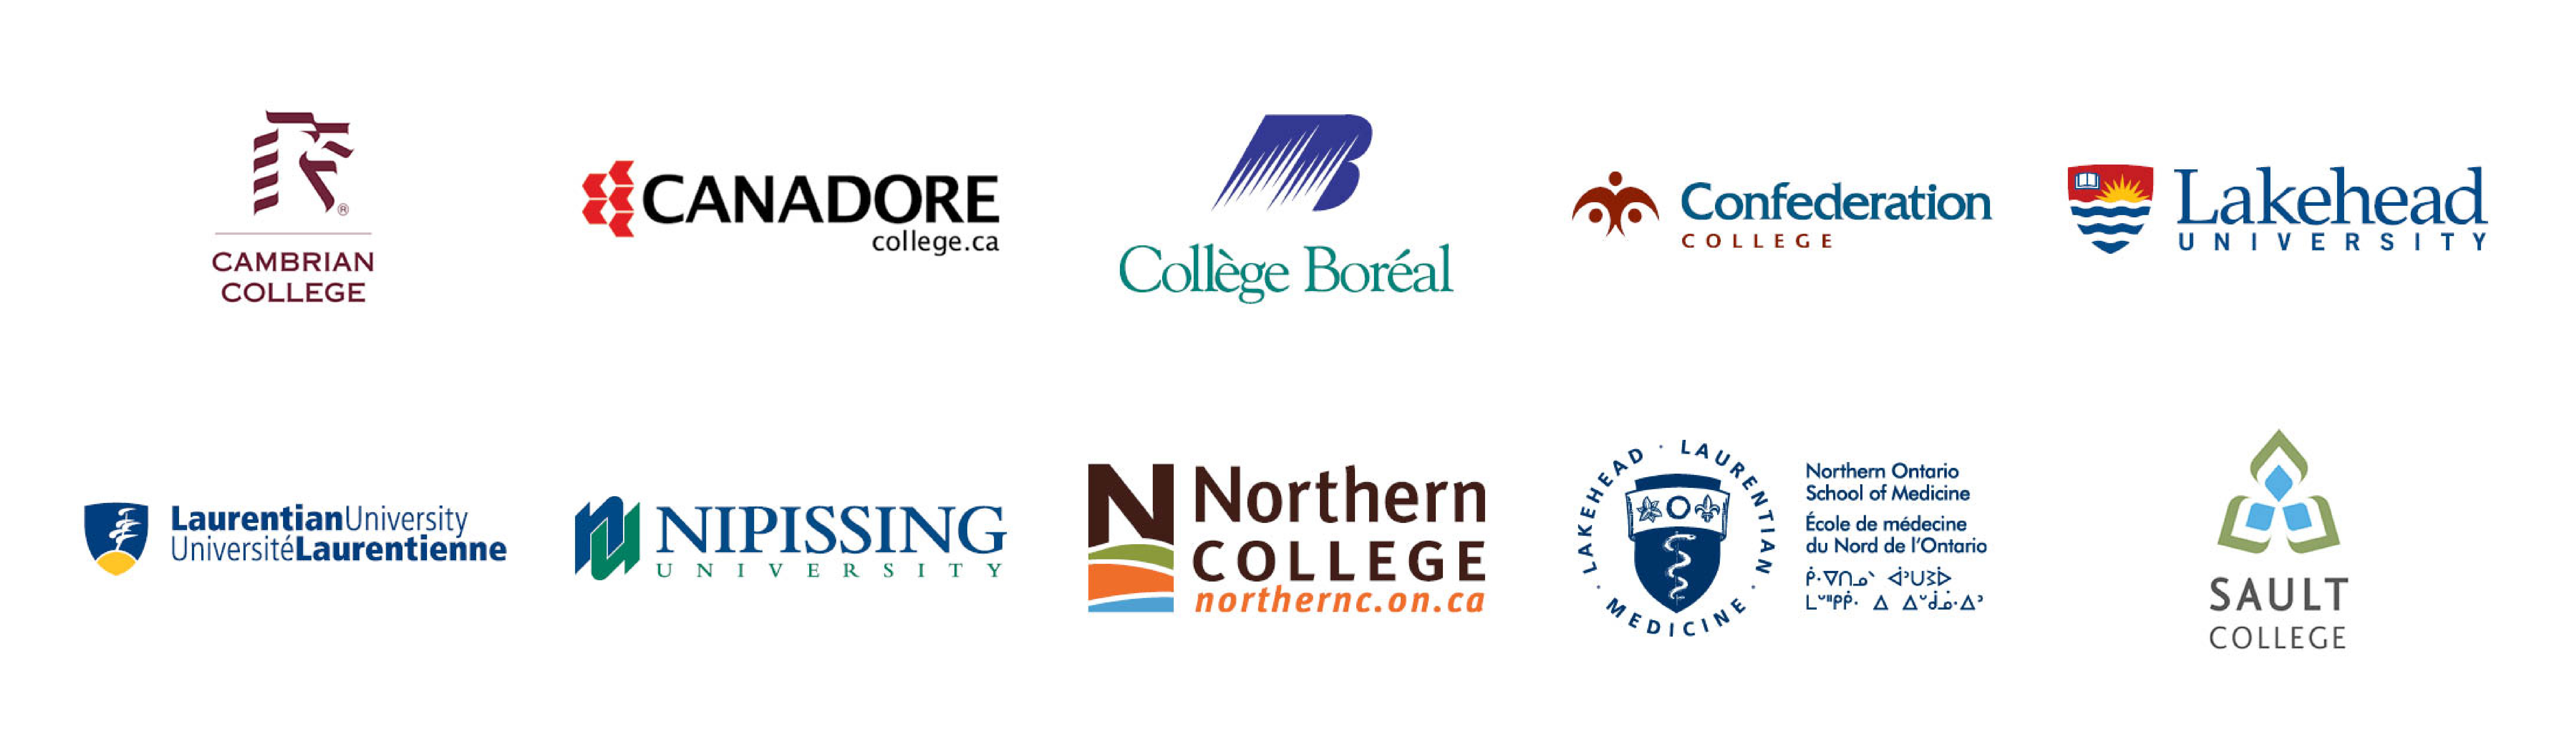 Photo of the logos of the ten universities and colleges that form the NICHE partnership.